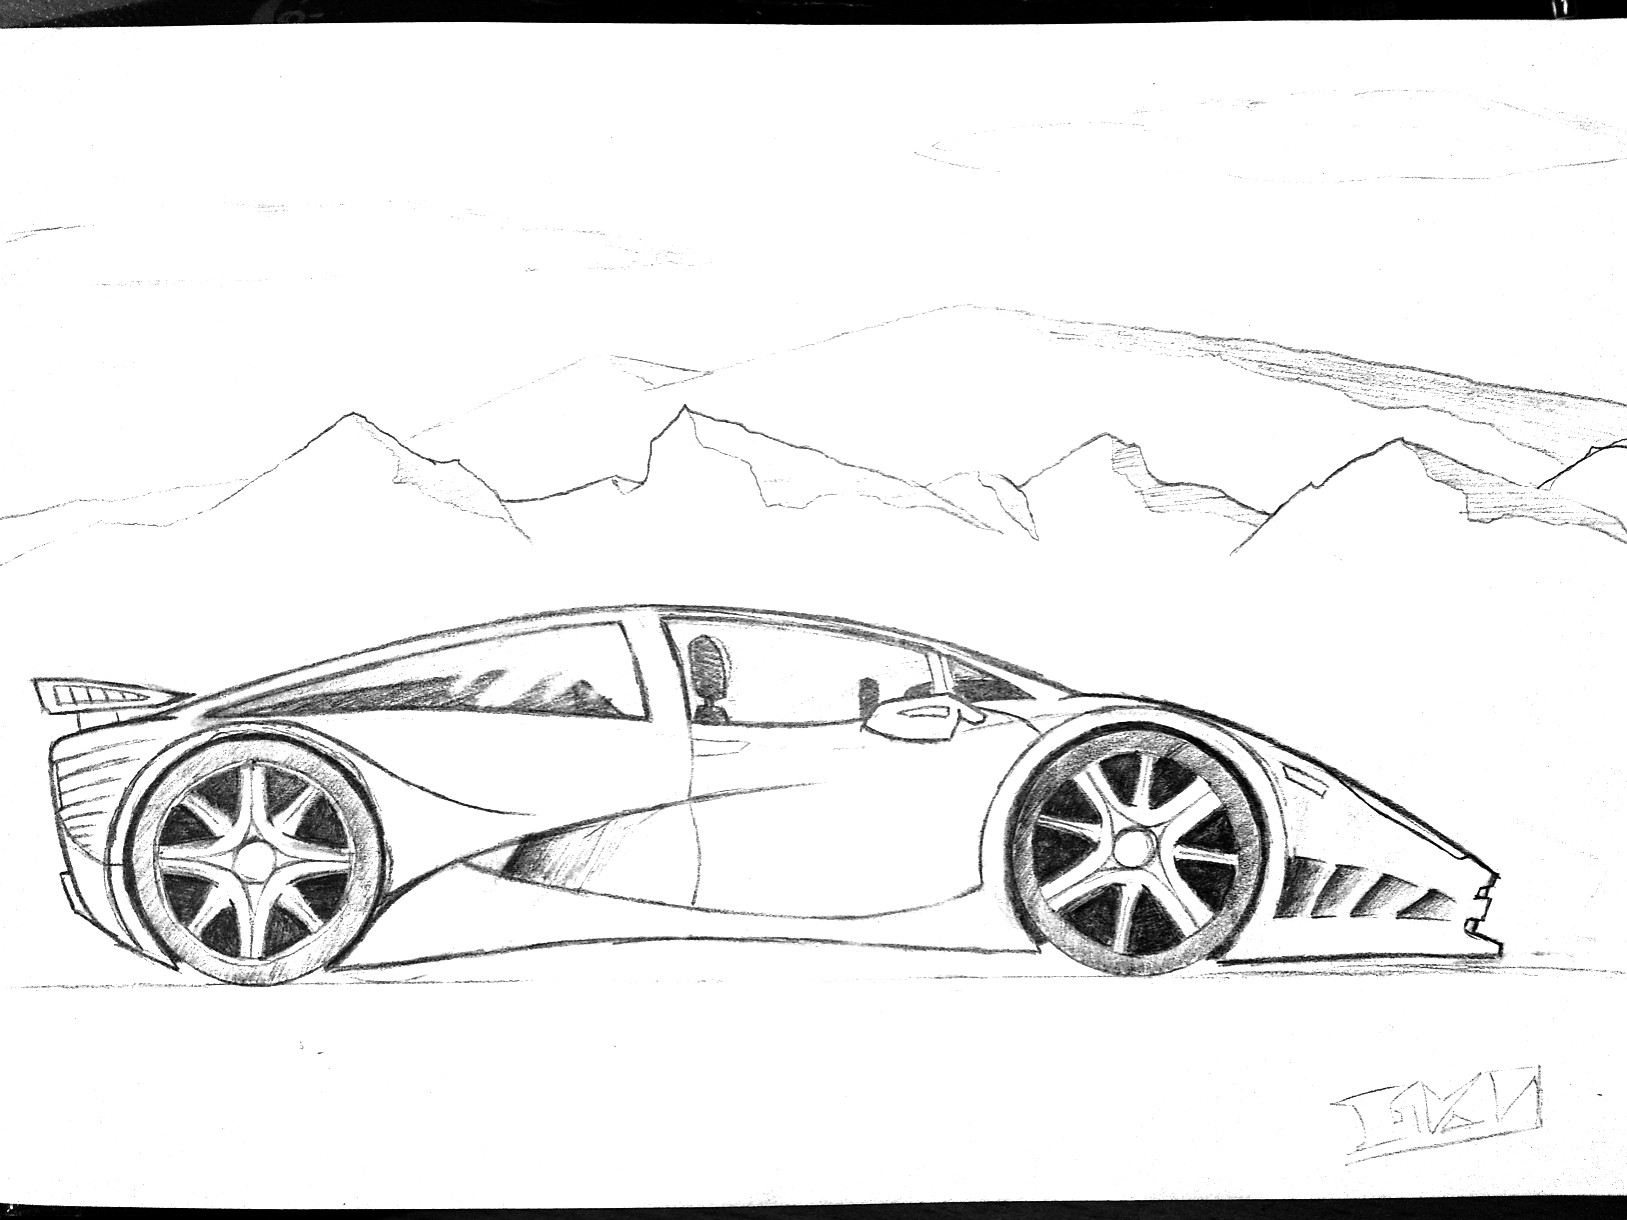 sports car drawing by gkn112 sports car drawing by gkn112 - Easy Sports Drawings